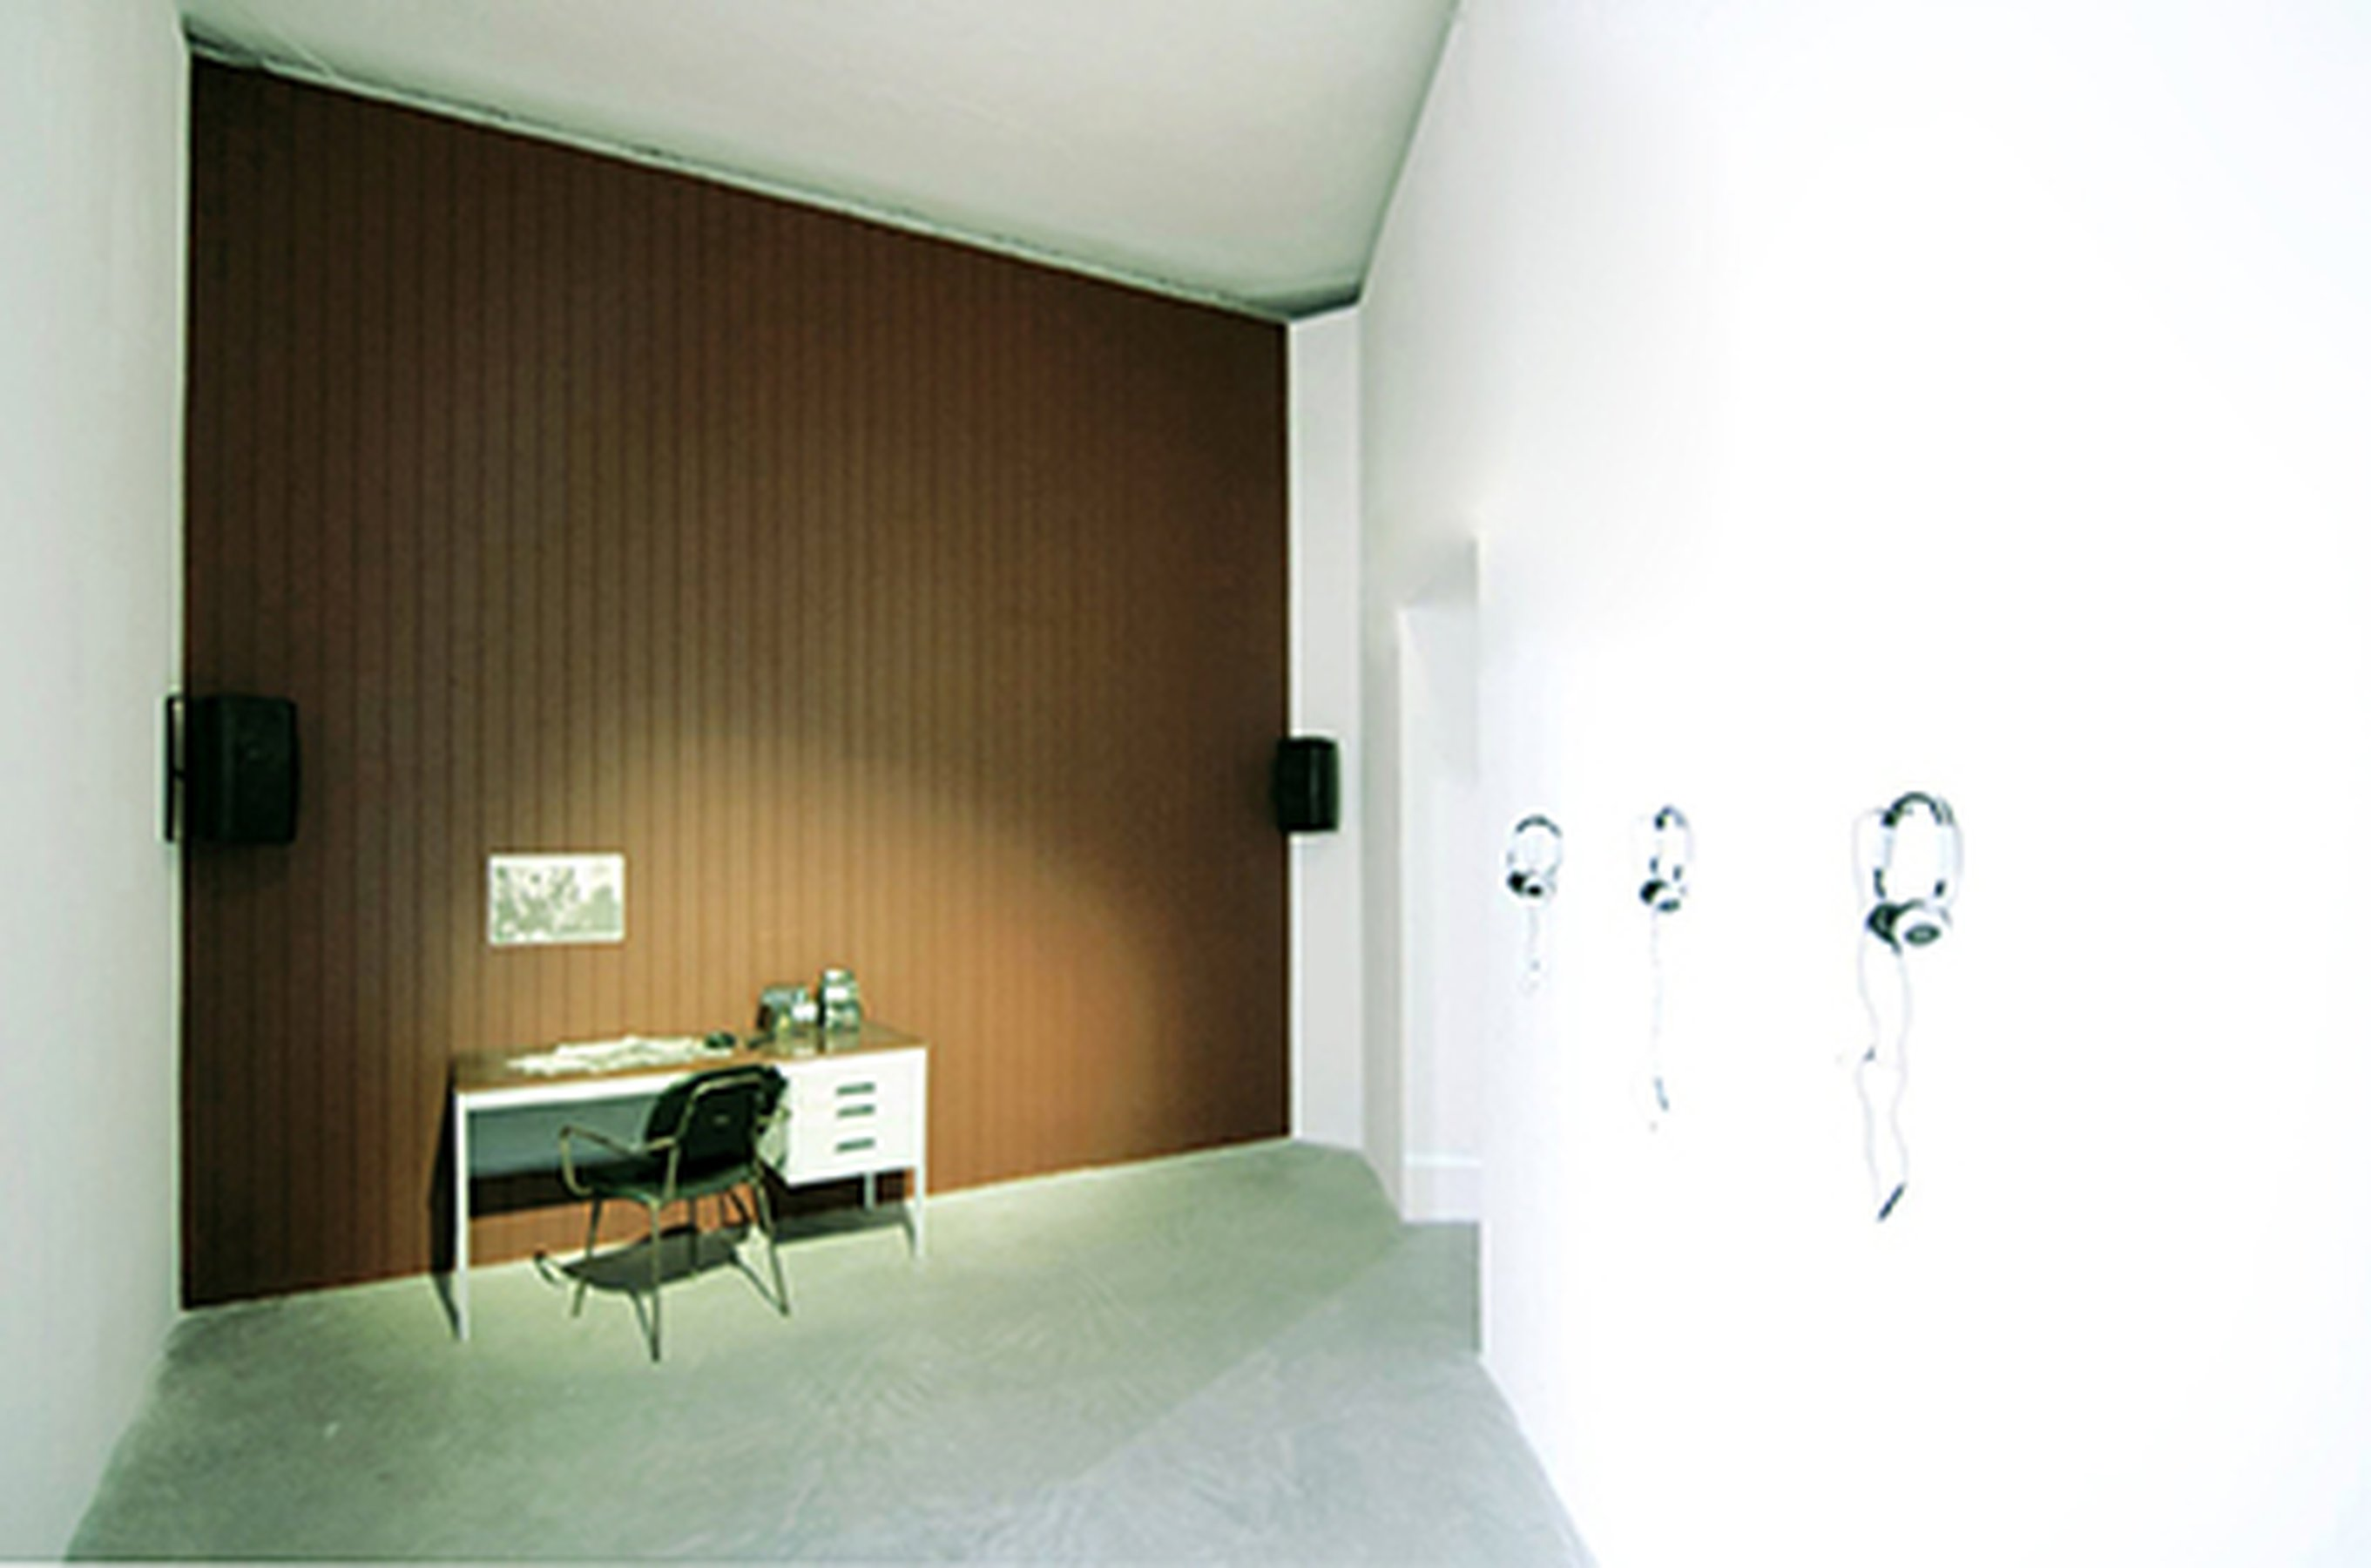 Estman Radio Drama, 2011 Installation: painted wood wall, desk, chair, radio, 4 CD players, 4 headphones Dimensions determinated by the space Installation view at 54th Biennial of Venice, ILLUMINATIONS, Venice (IT)